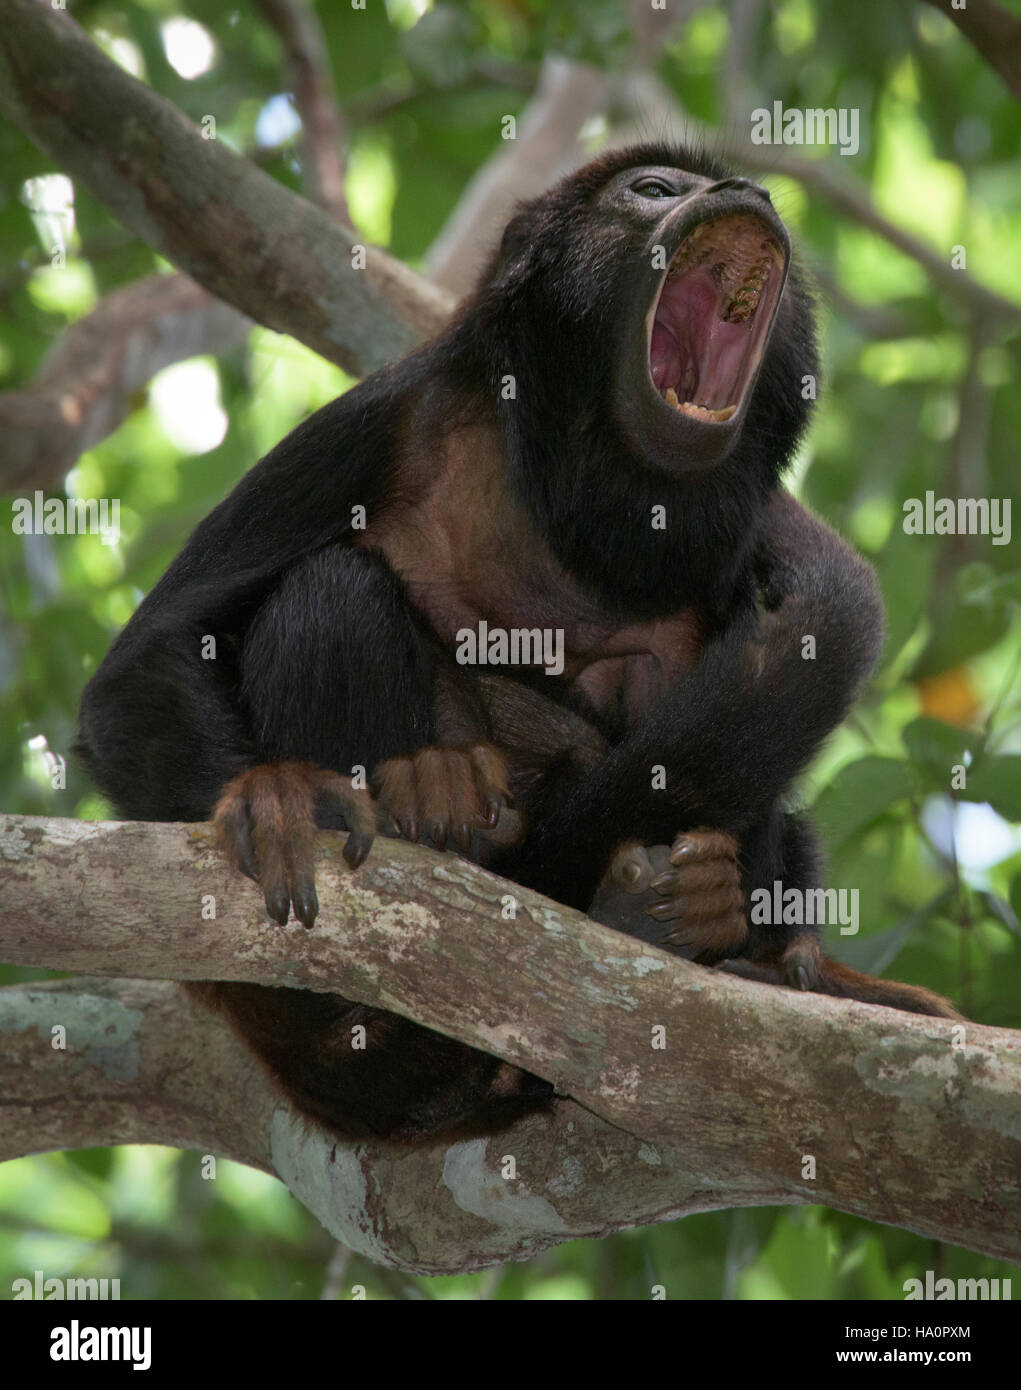 Red-handed howler Monkey howling - Stock Image